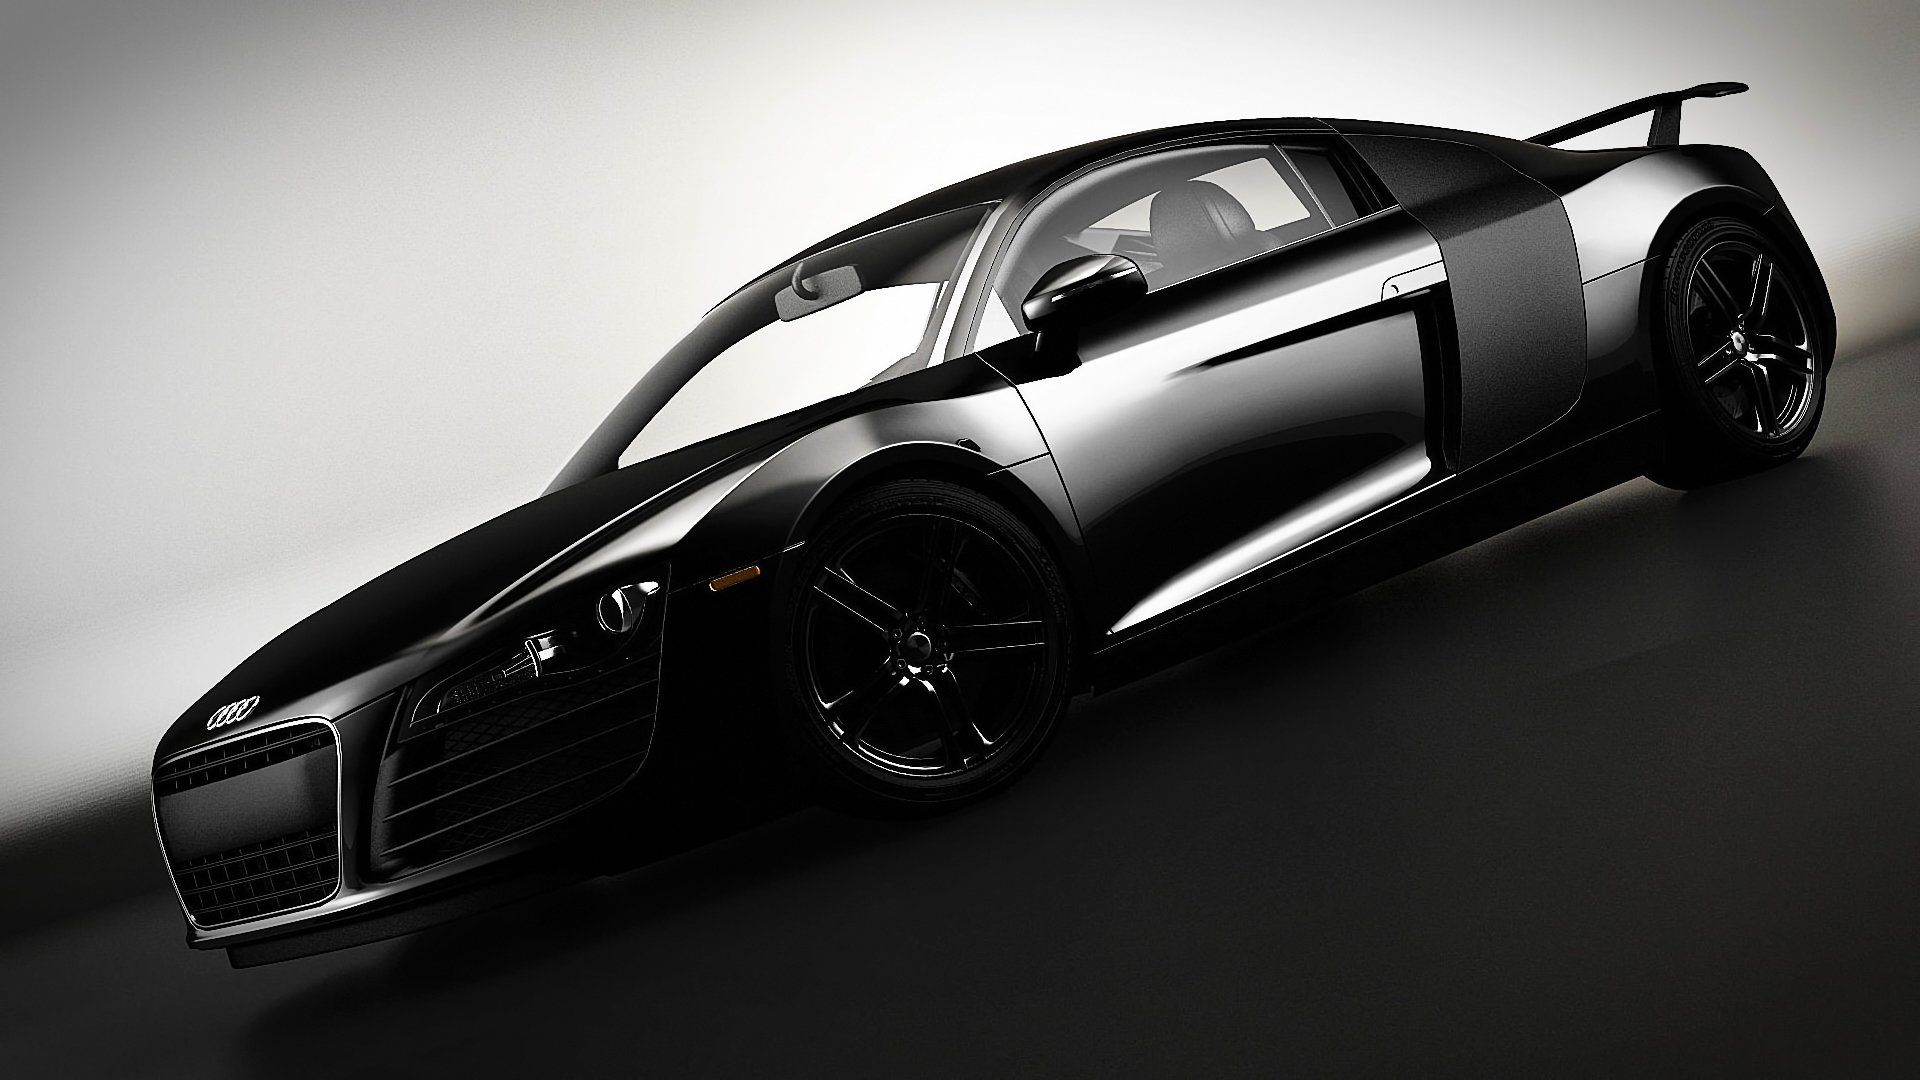 Audi TT Wallpapers Group 3D Wallpapers Pinterest